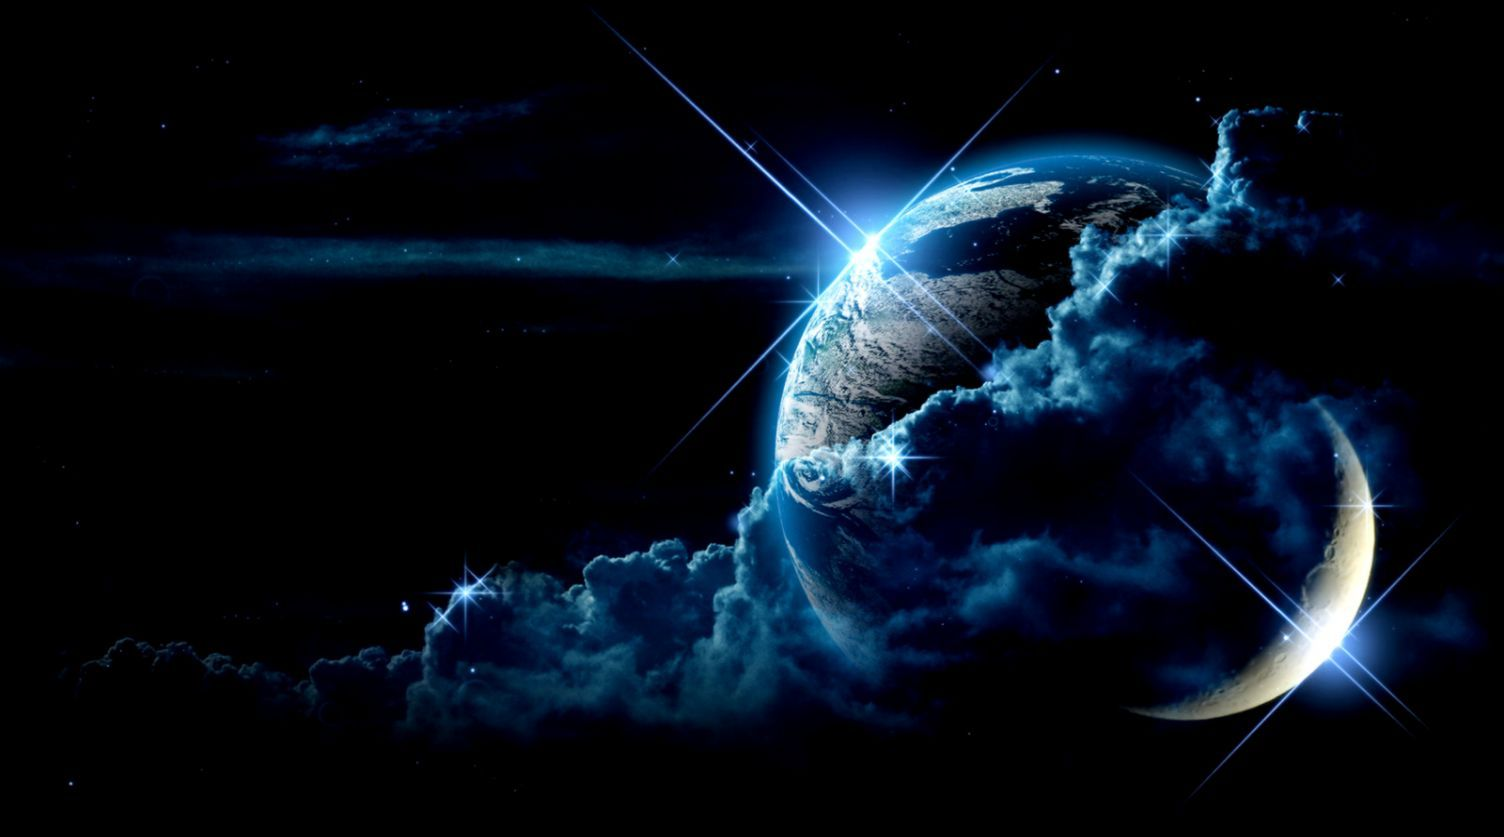 Earth And Moon Wallpapers Movie Hd Wallpapers Space Fantasy Planets Wallpaper Hd Space